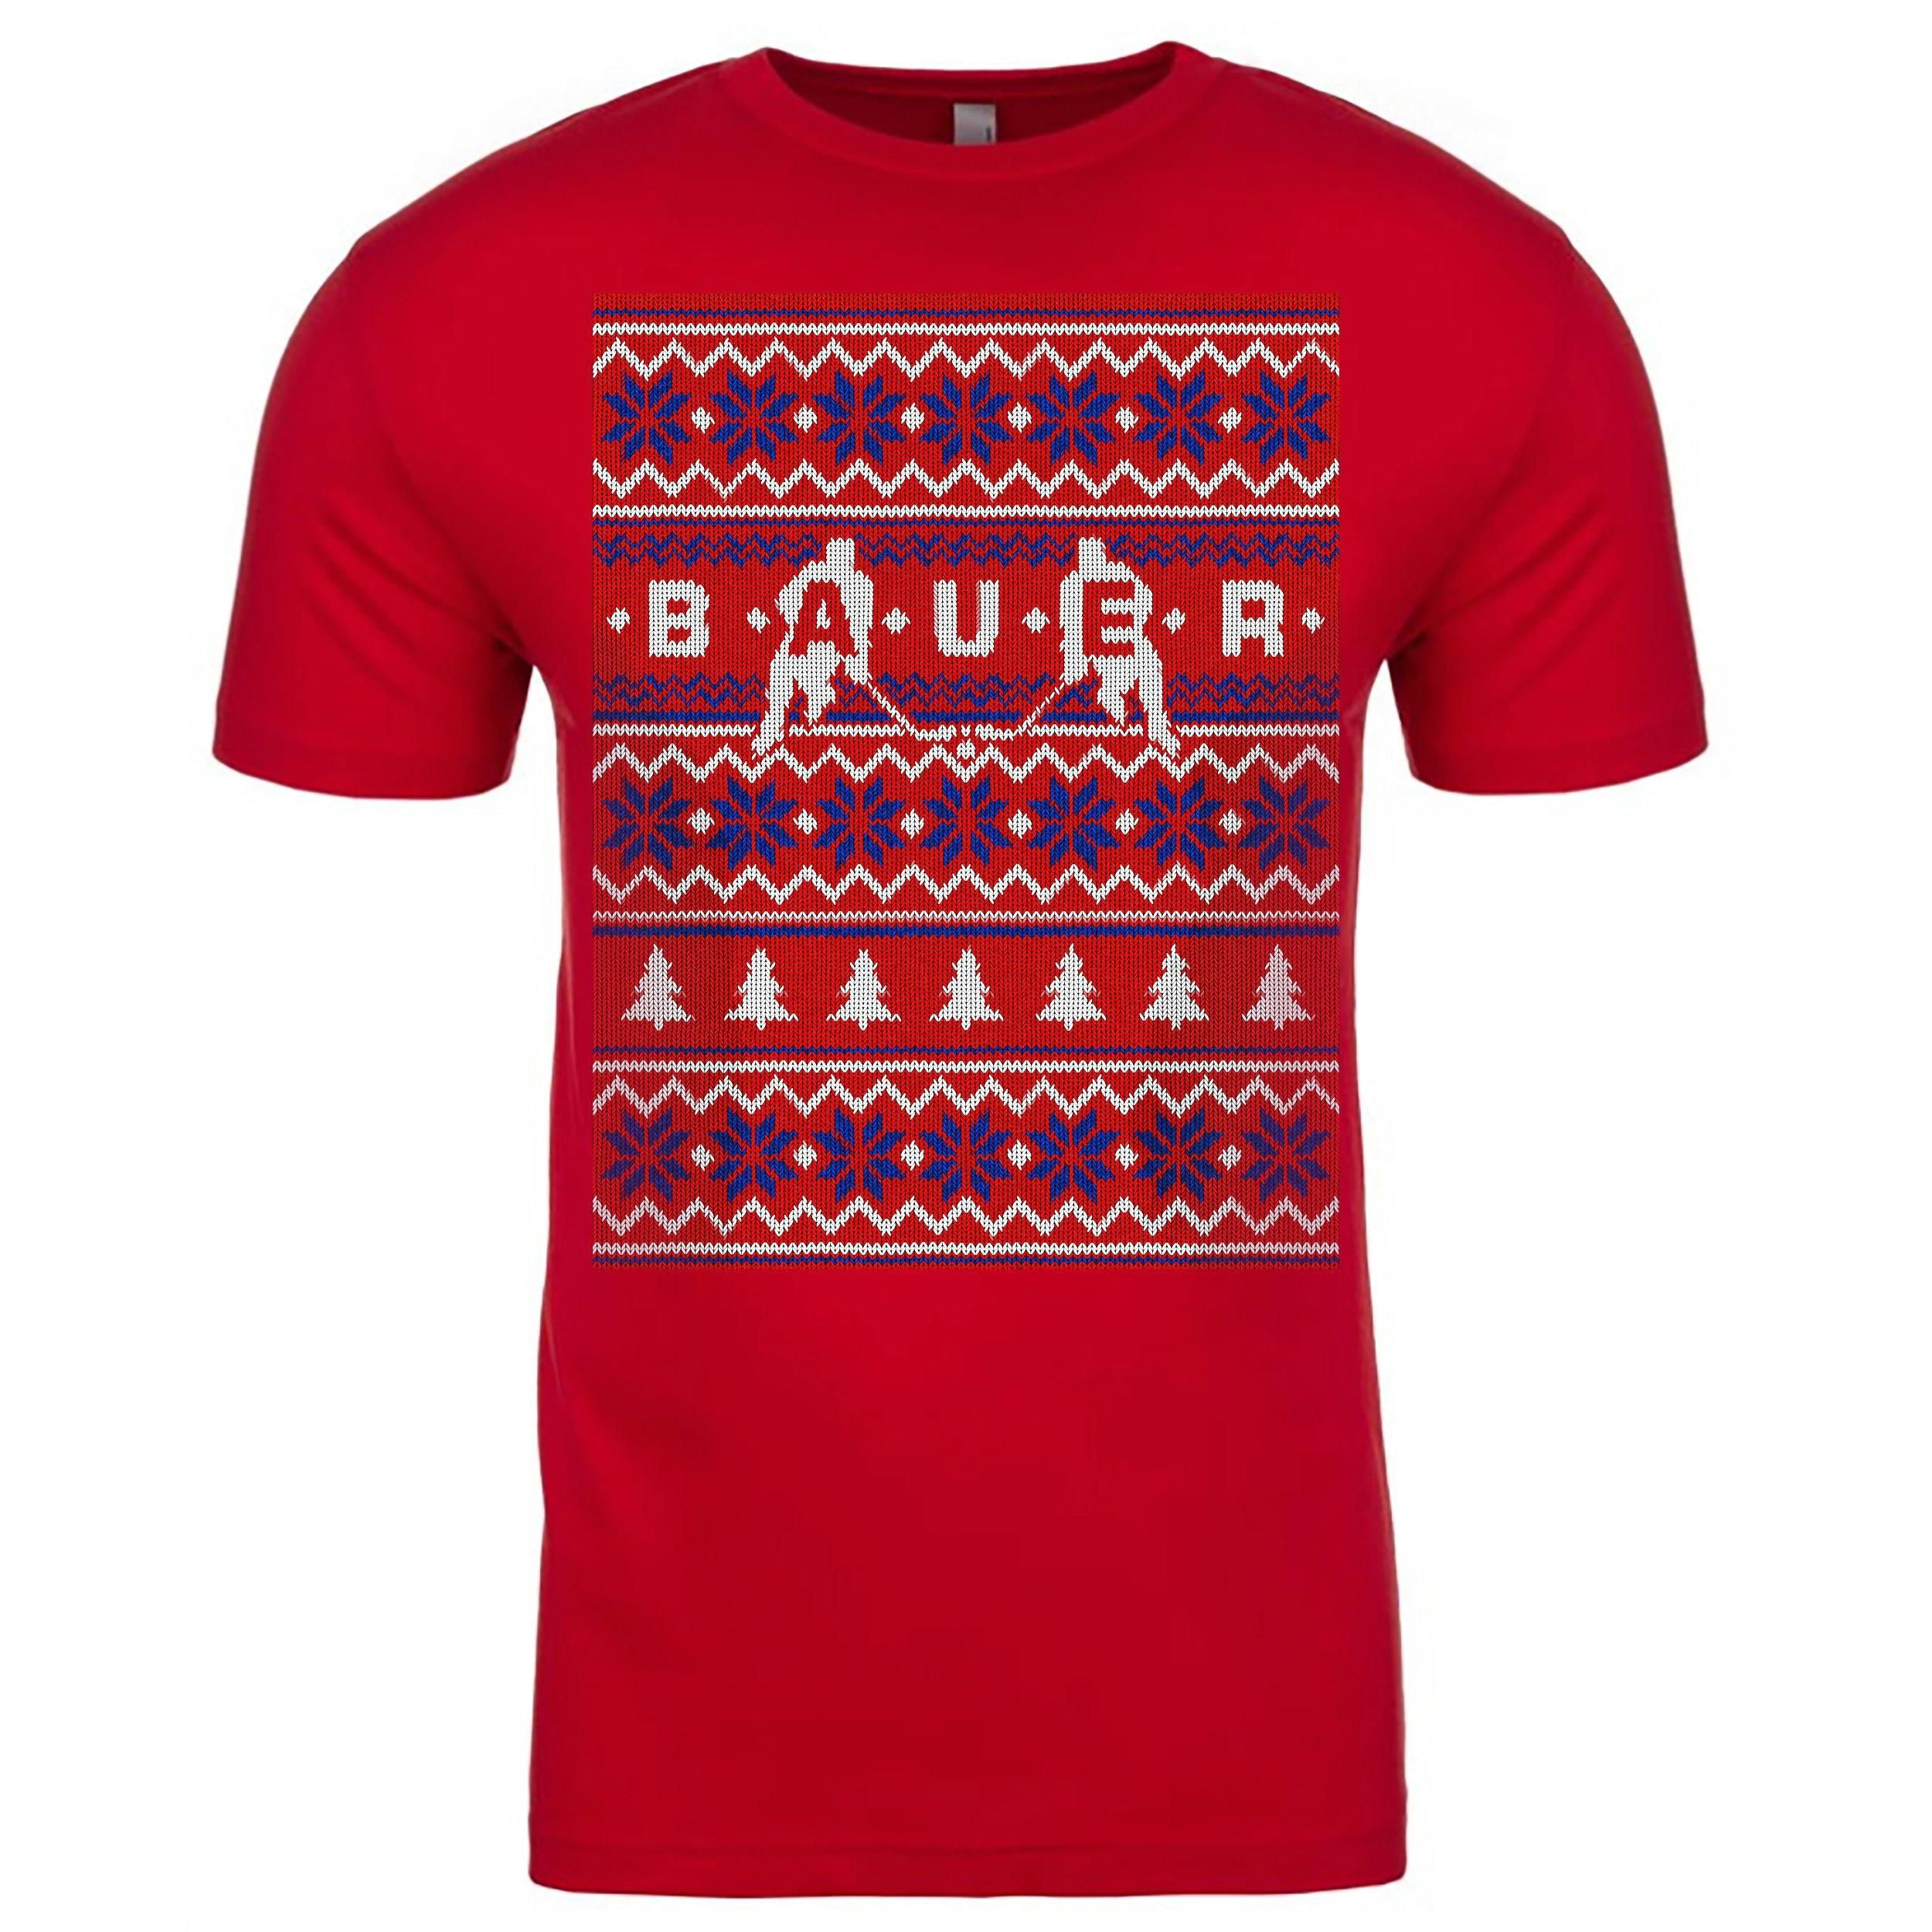 Bauer Short Sleeve Tee - Holiday Sweater Senior,,Medium